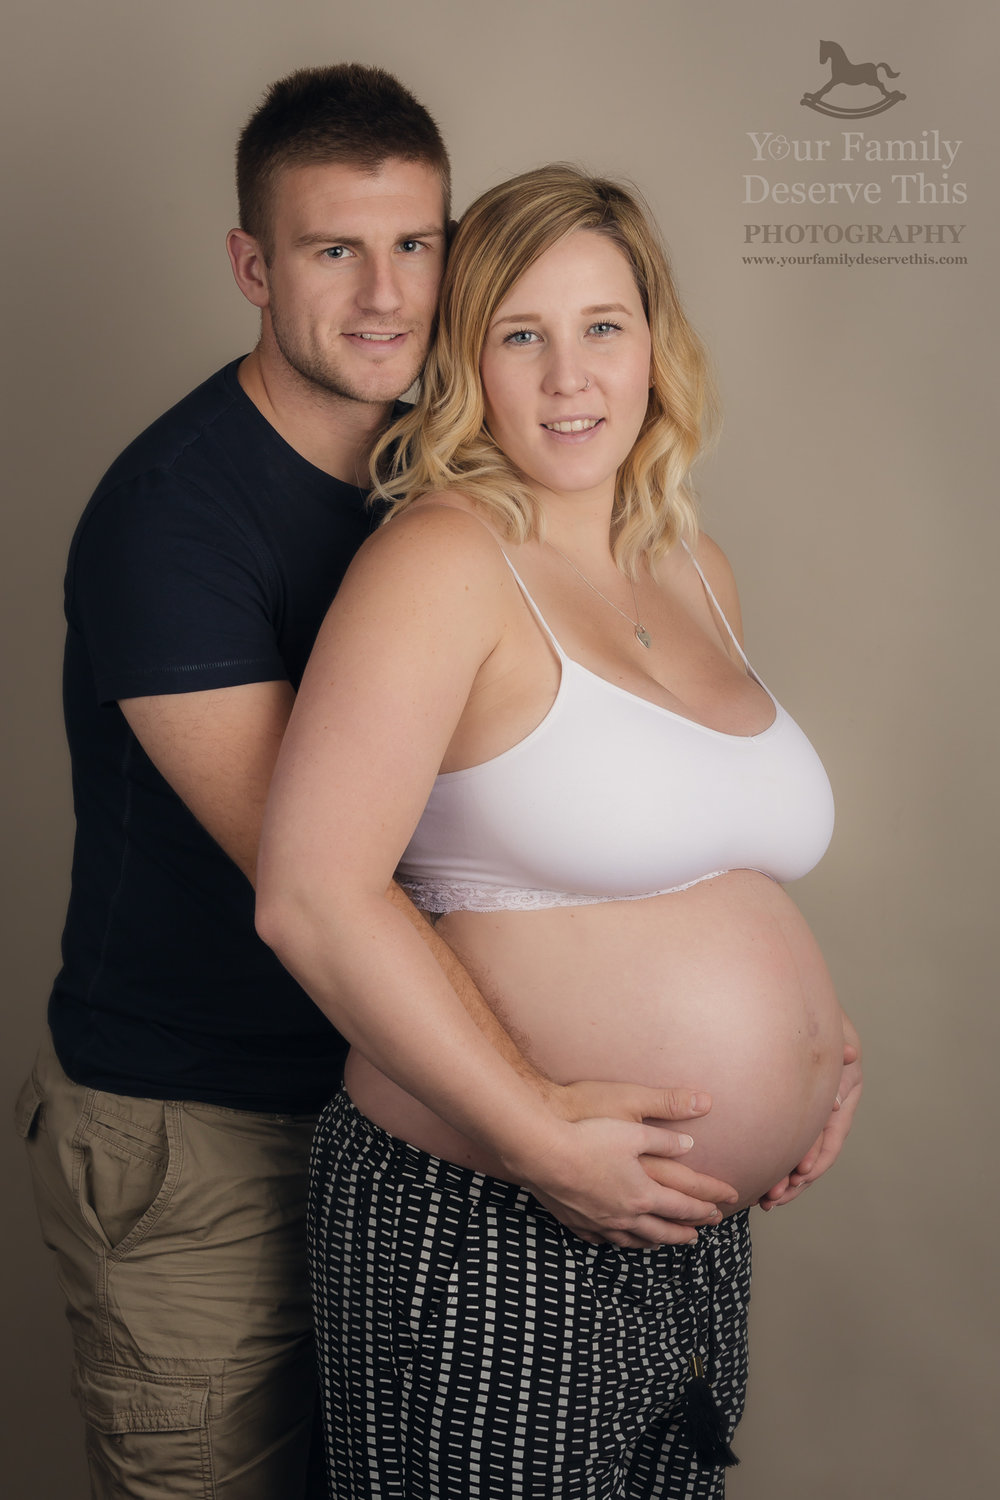 Celebrate this wonderful moment in your lives with a Maternity Portrait. www.yourfamilydeservethis.com